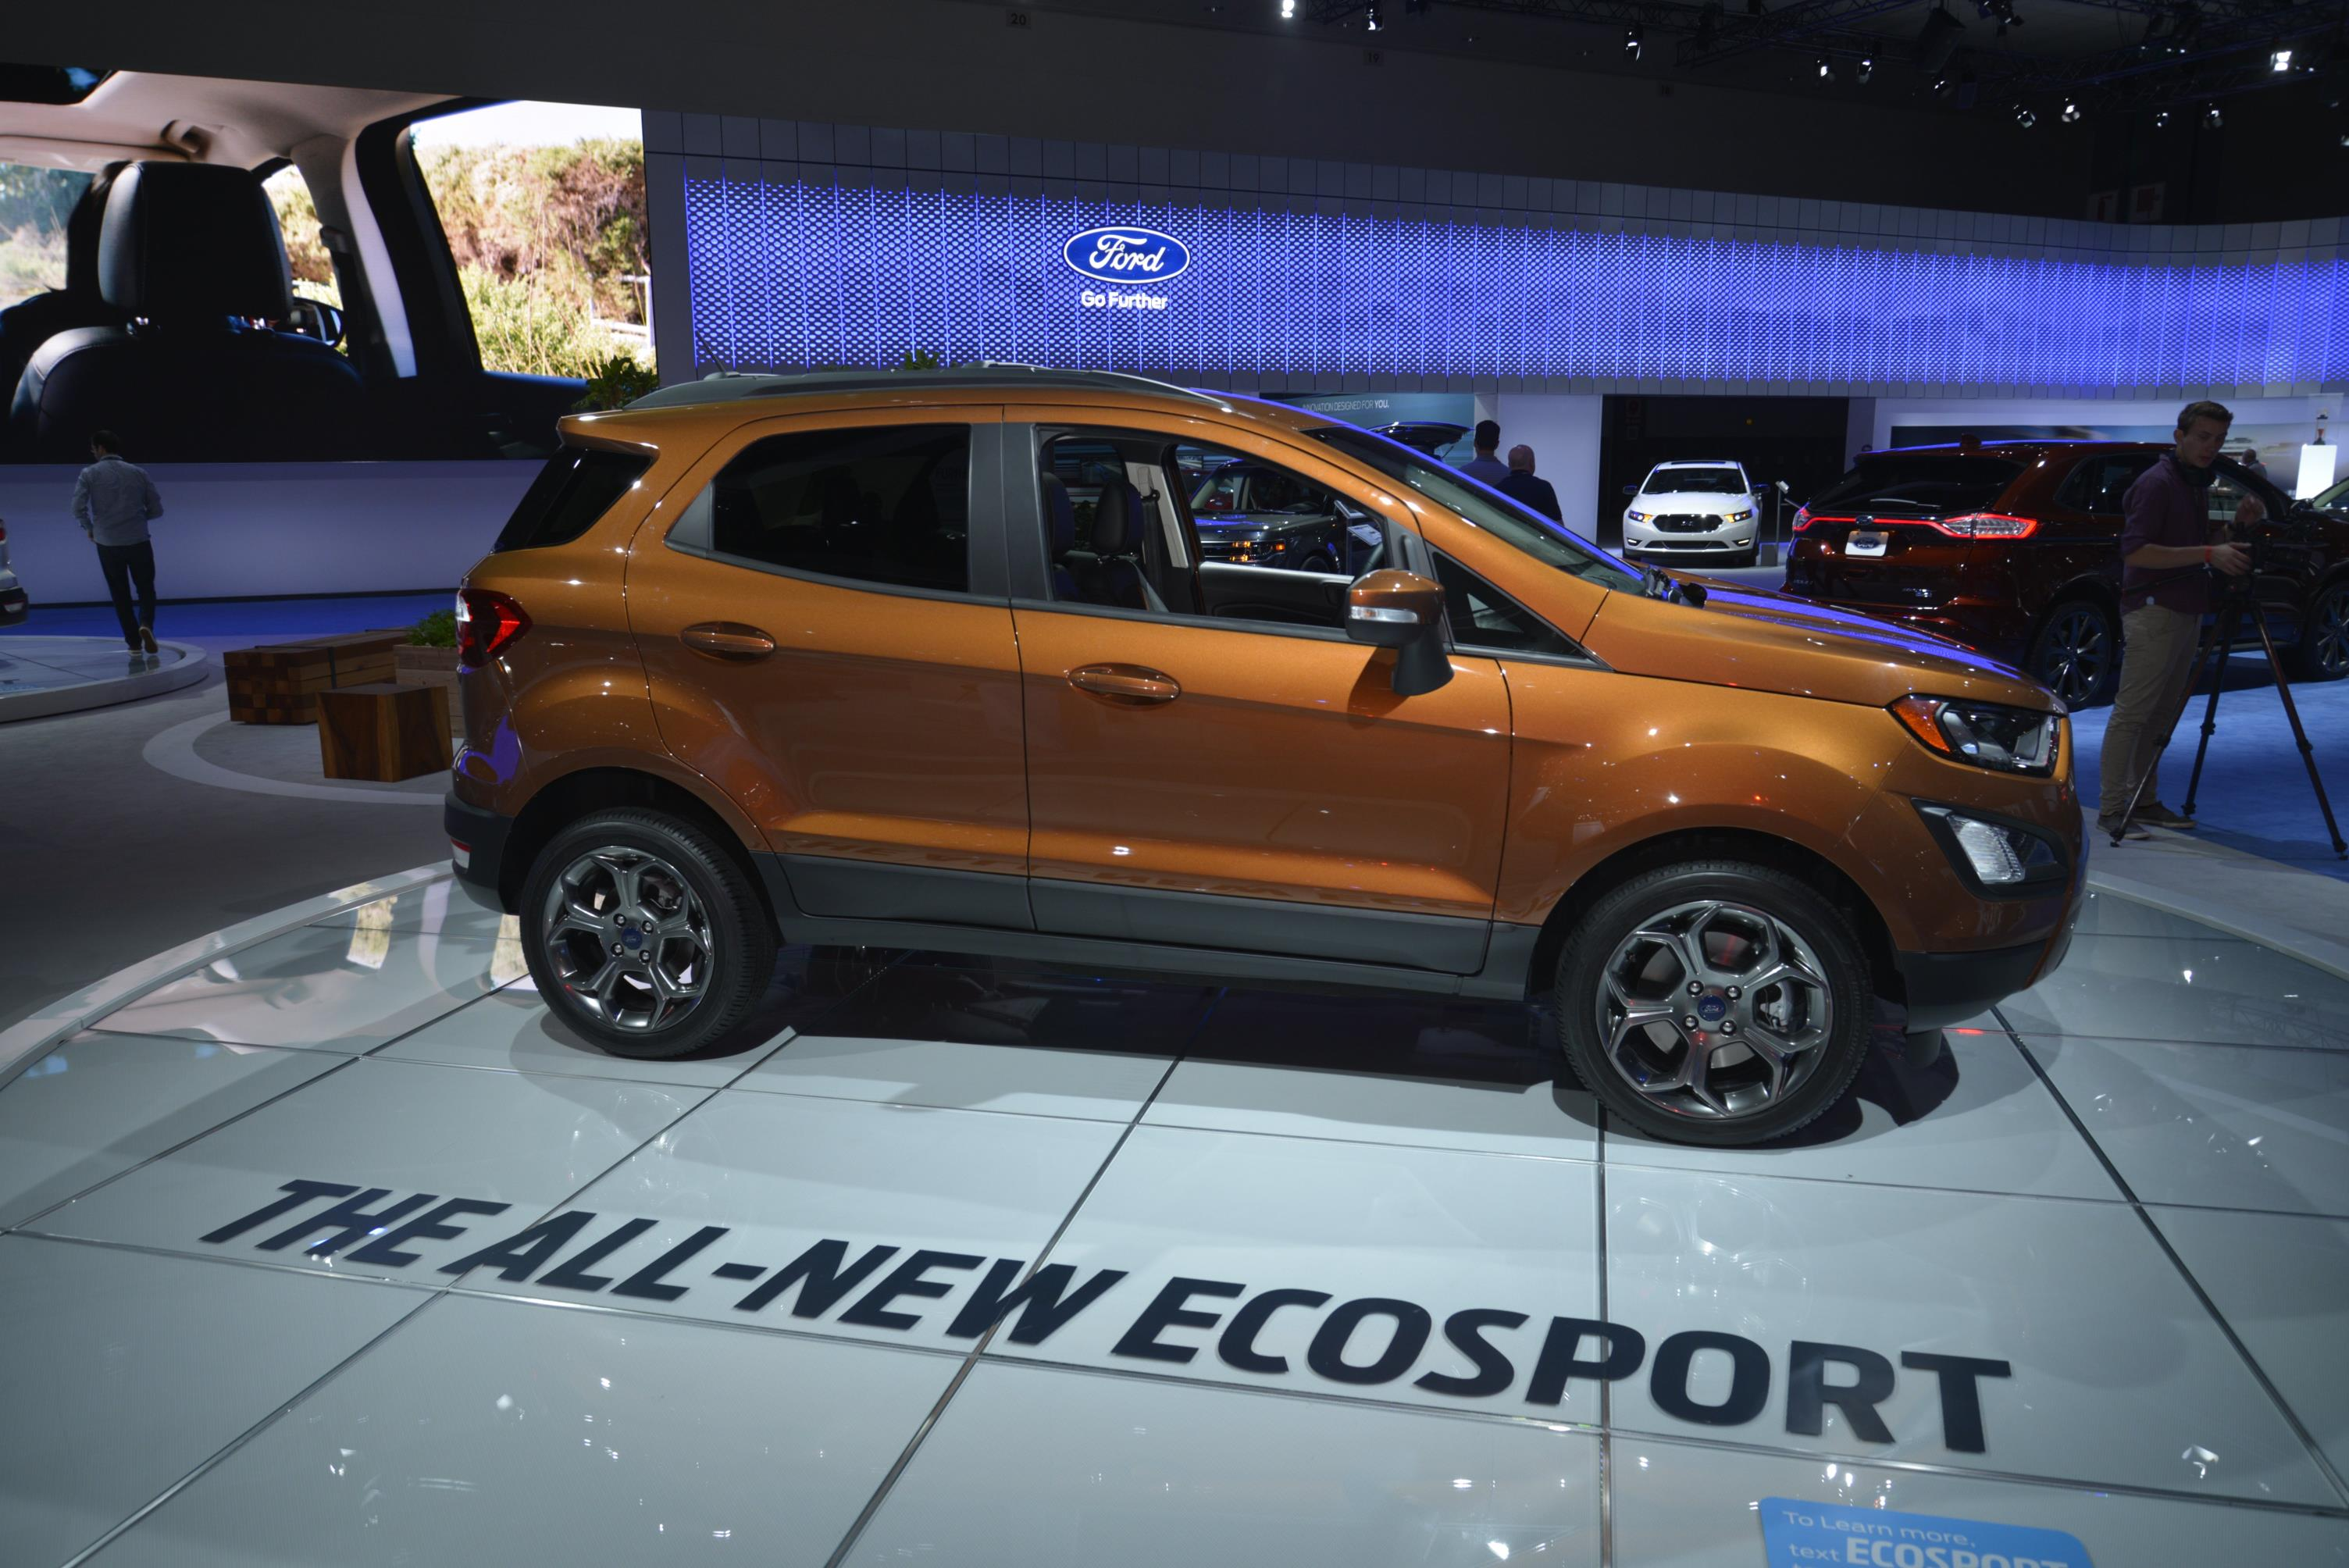 ... 2018 Ford EcoSport Looks Ugly as Sin in Los Angeles ... & 2018 Ford EcoSport Looks Ugly as Sin in Los Angeles - autoevolution markmcfarlin.com